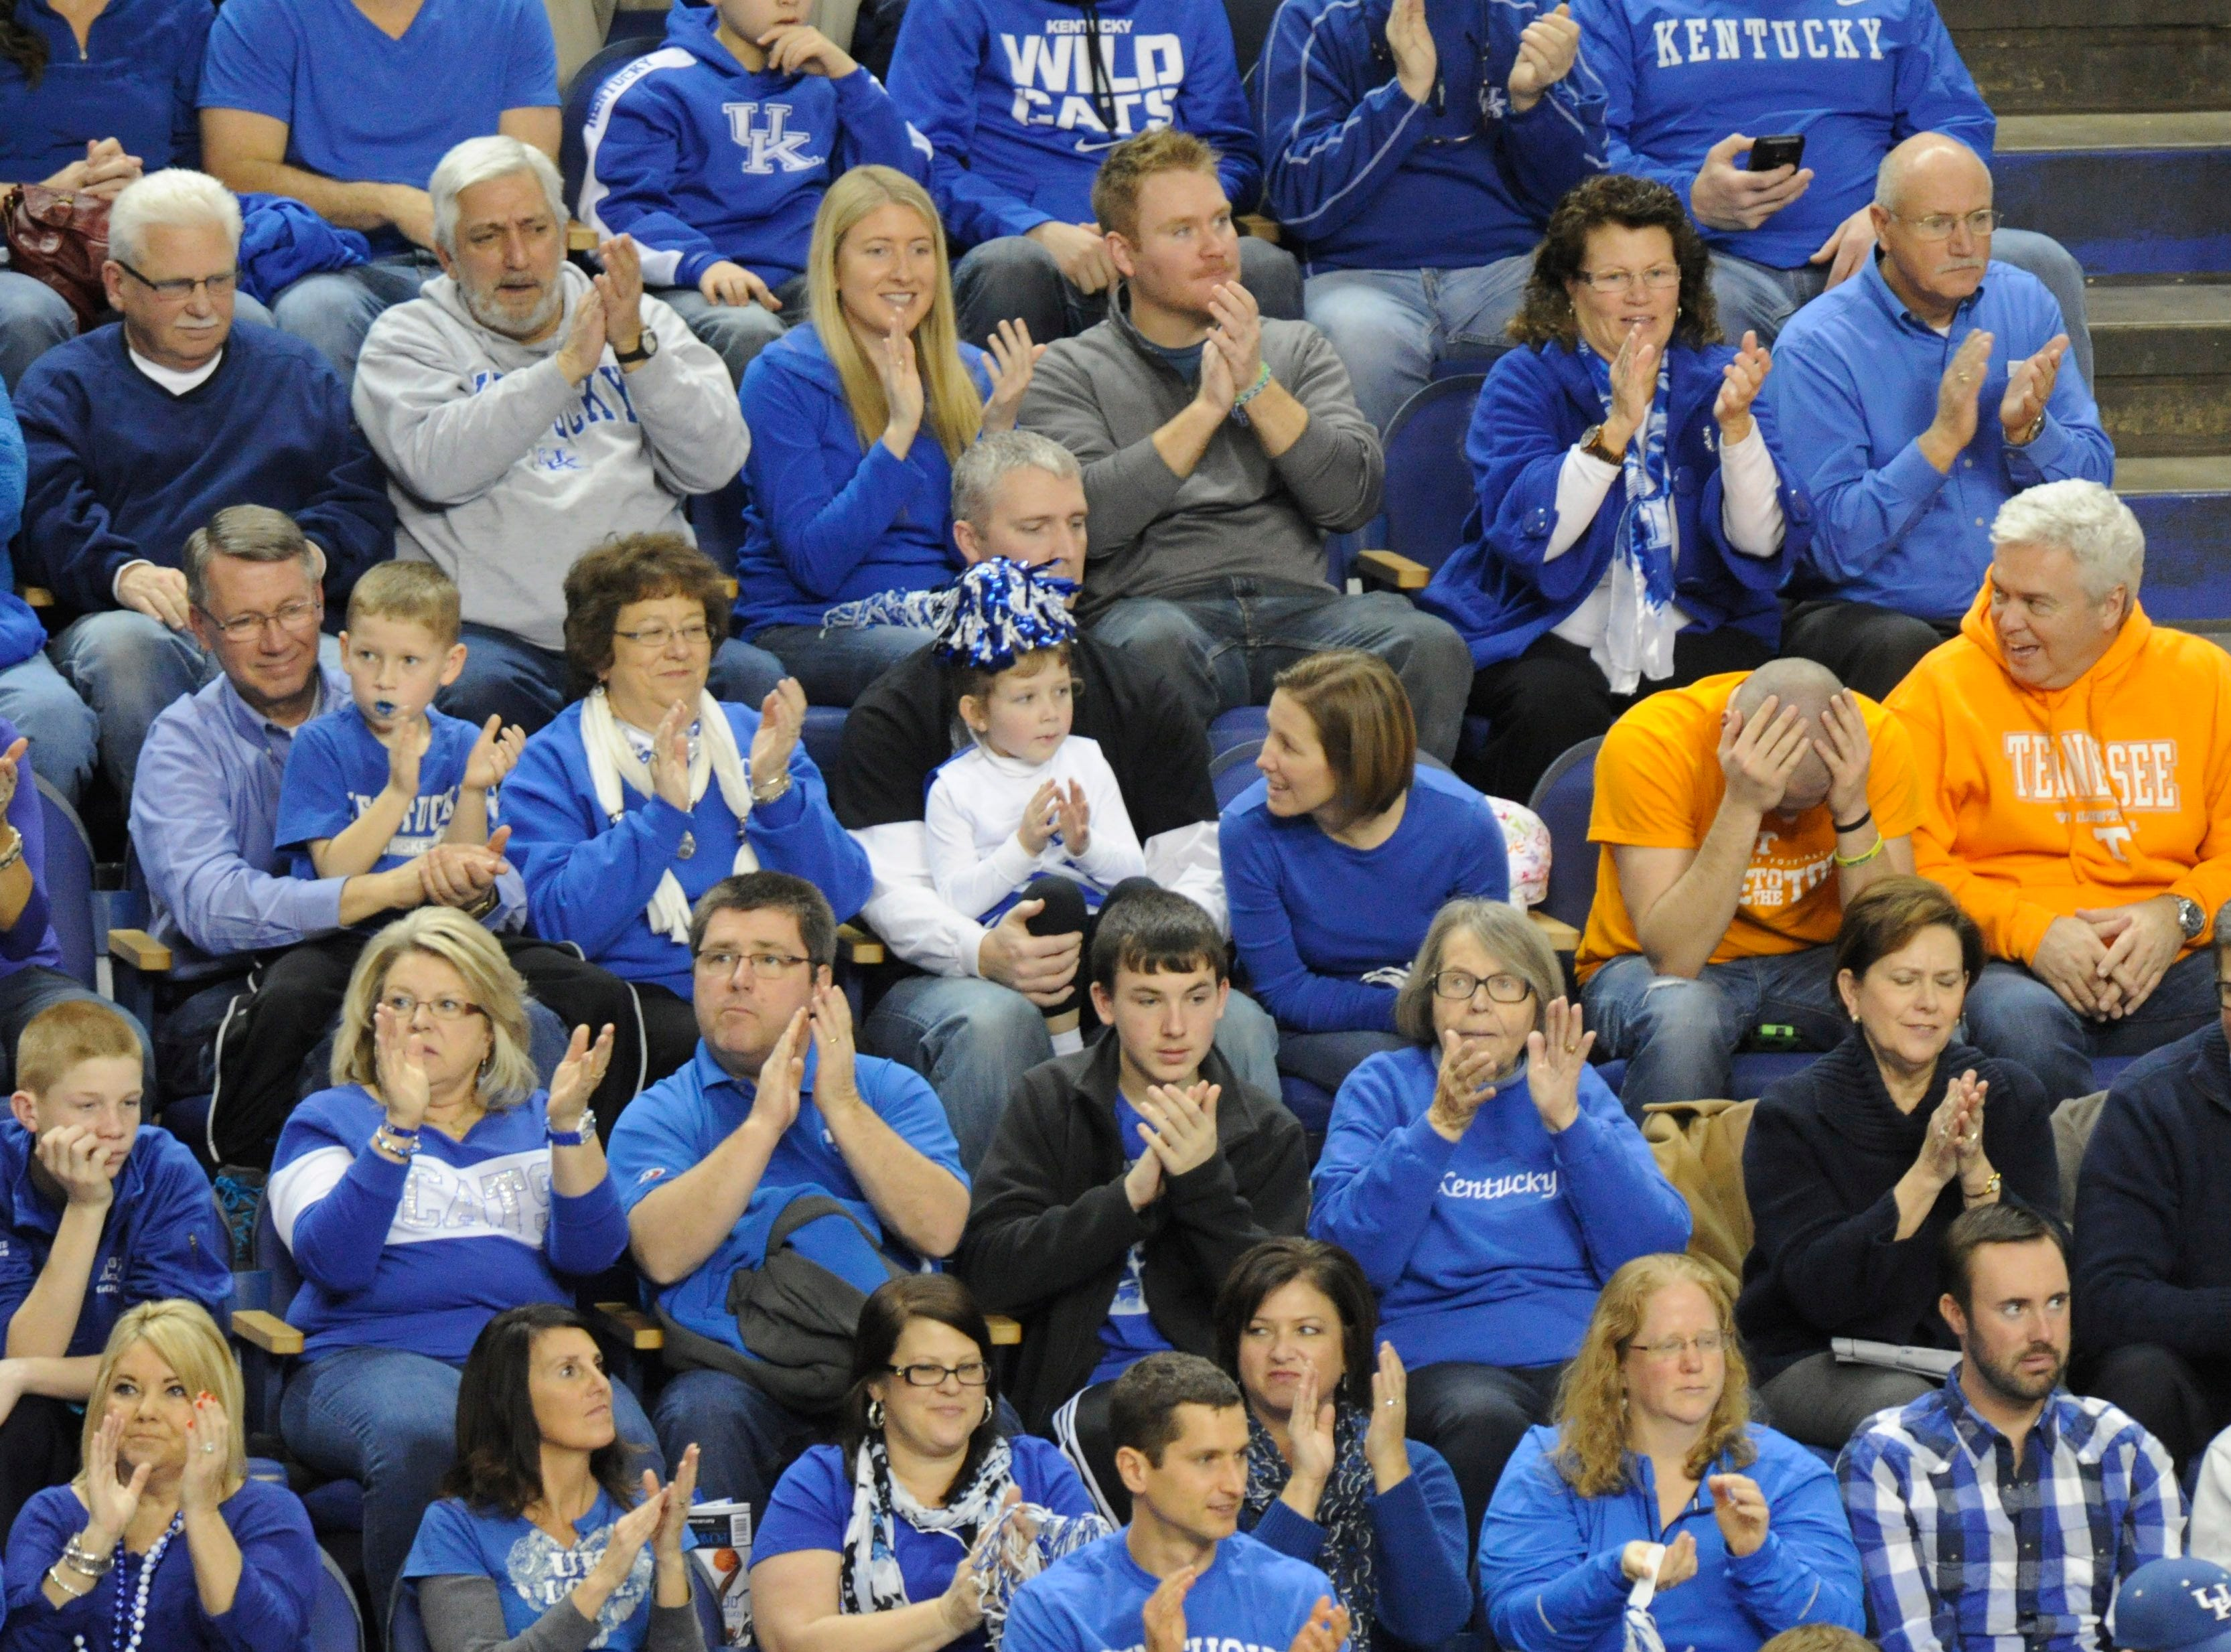 A Tennessee fan hold his head in his hands among a sea of Big Blue Kentucky fans during the second half at University of Kentucky's Rupp Arena in Lexington on Saturday, Jan. 18, 2014. Tennessee lost 74-66.